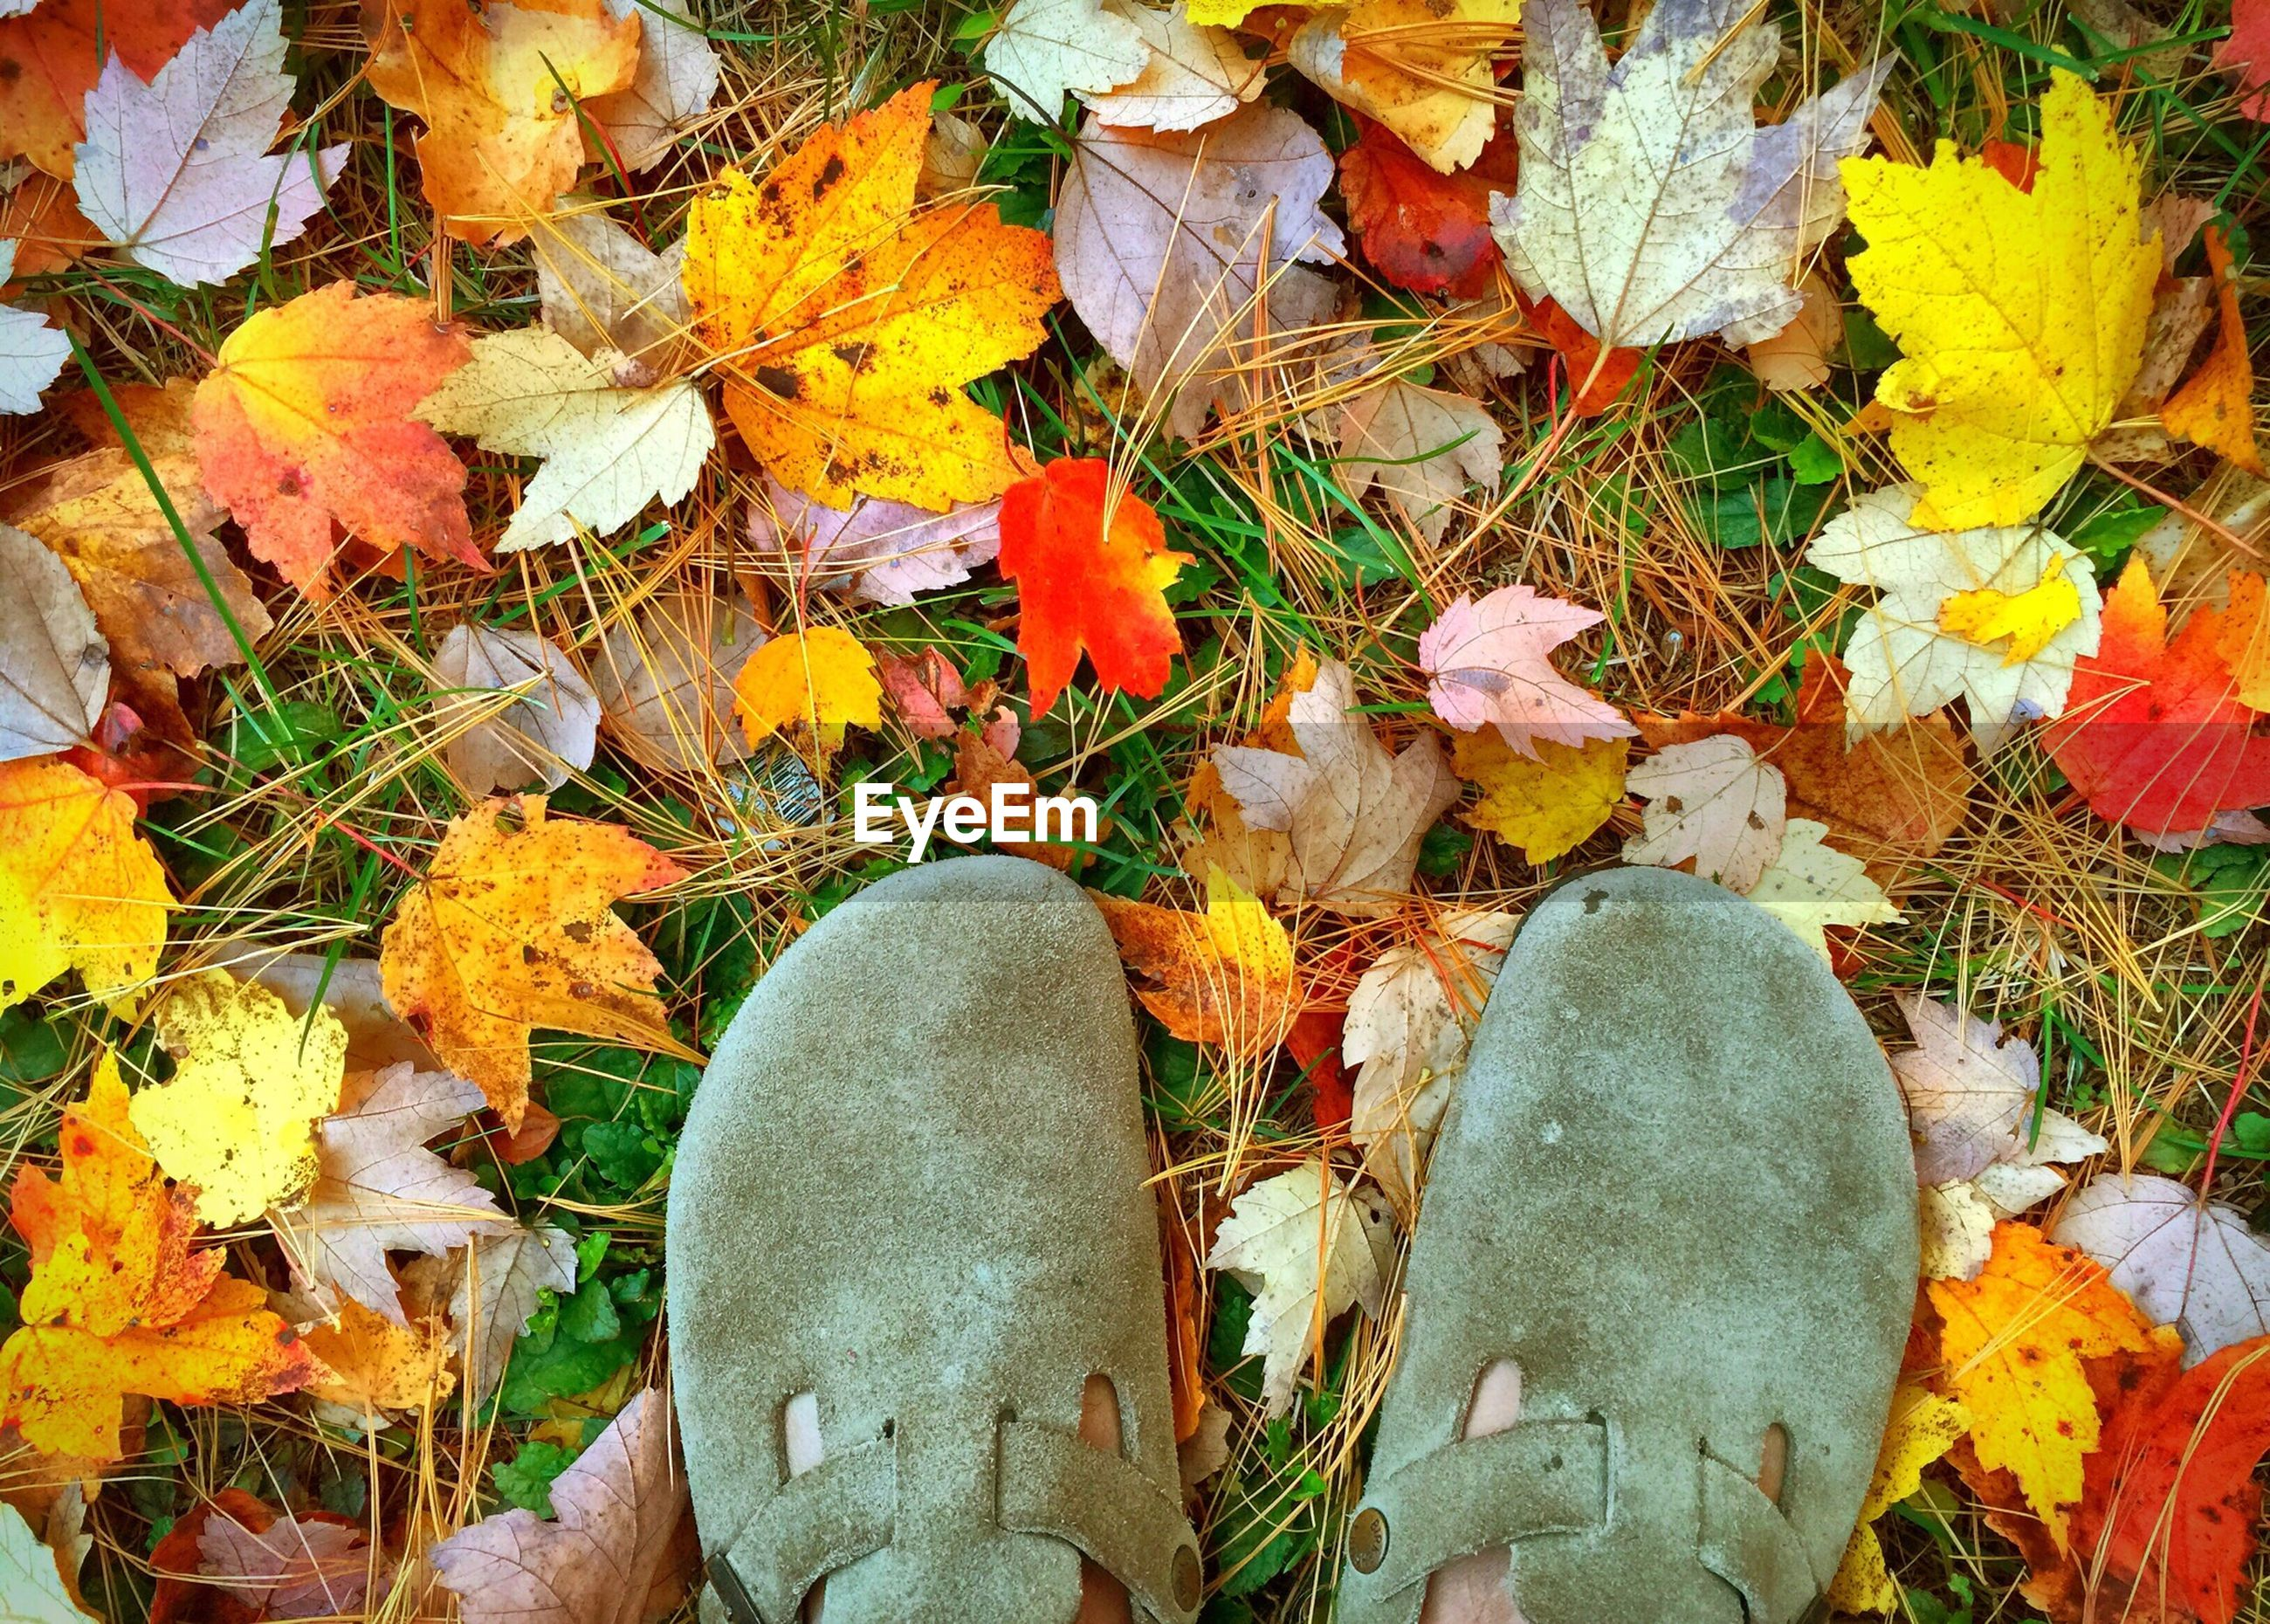 Low section of person standing on field with fallen leaves during autumn